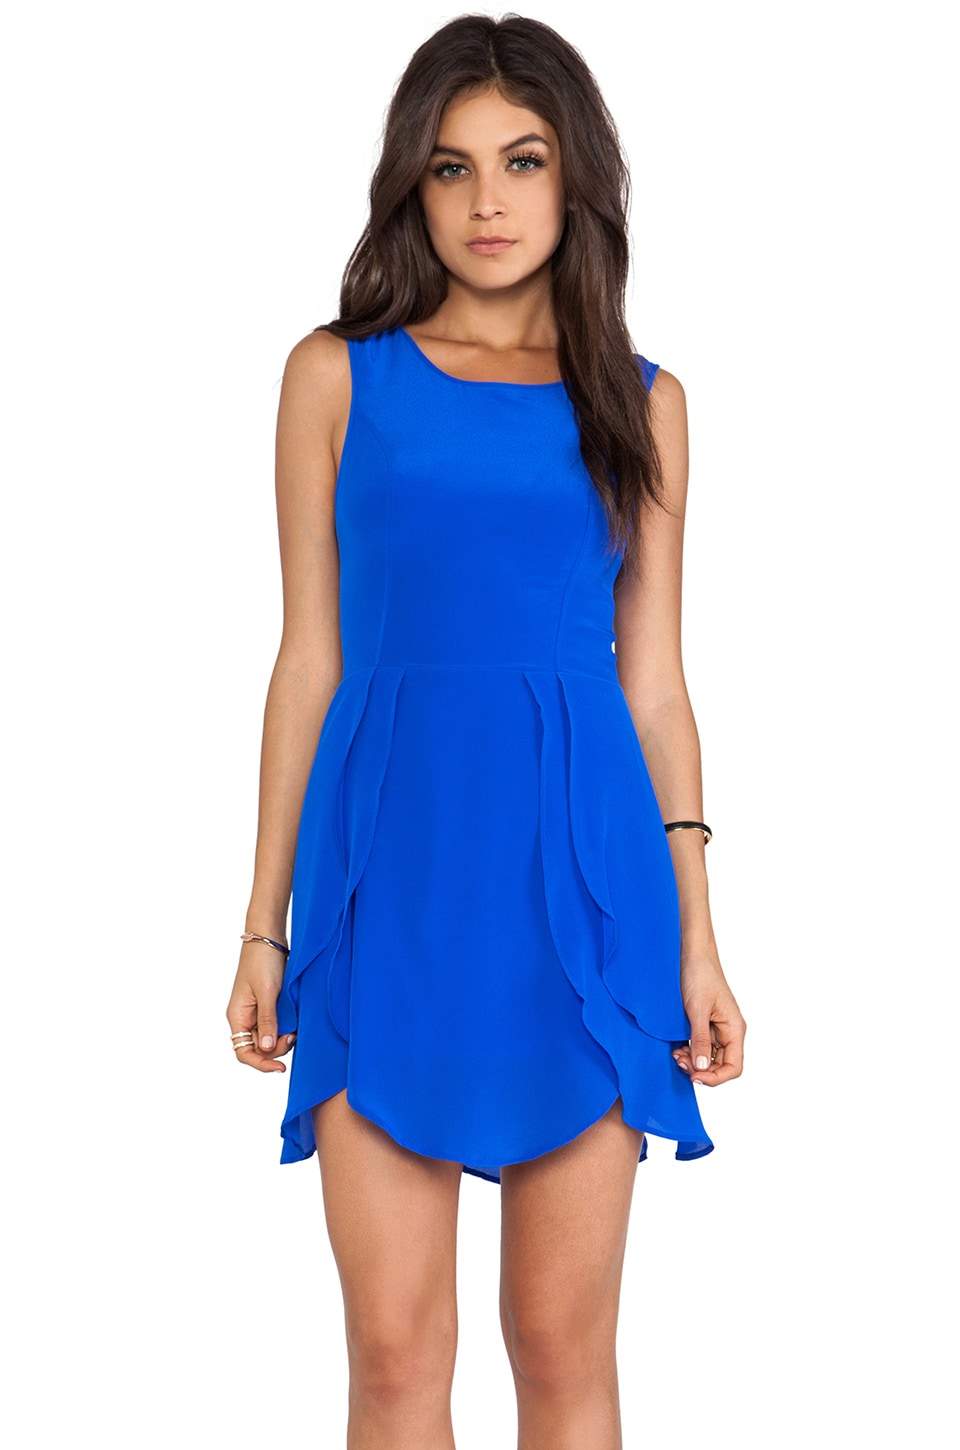 Wish Petal Dress in Cobalt